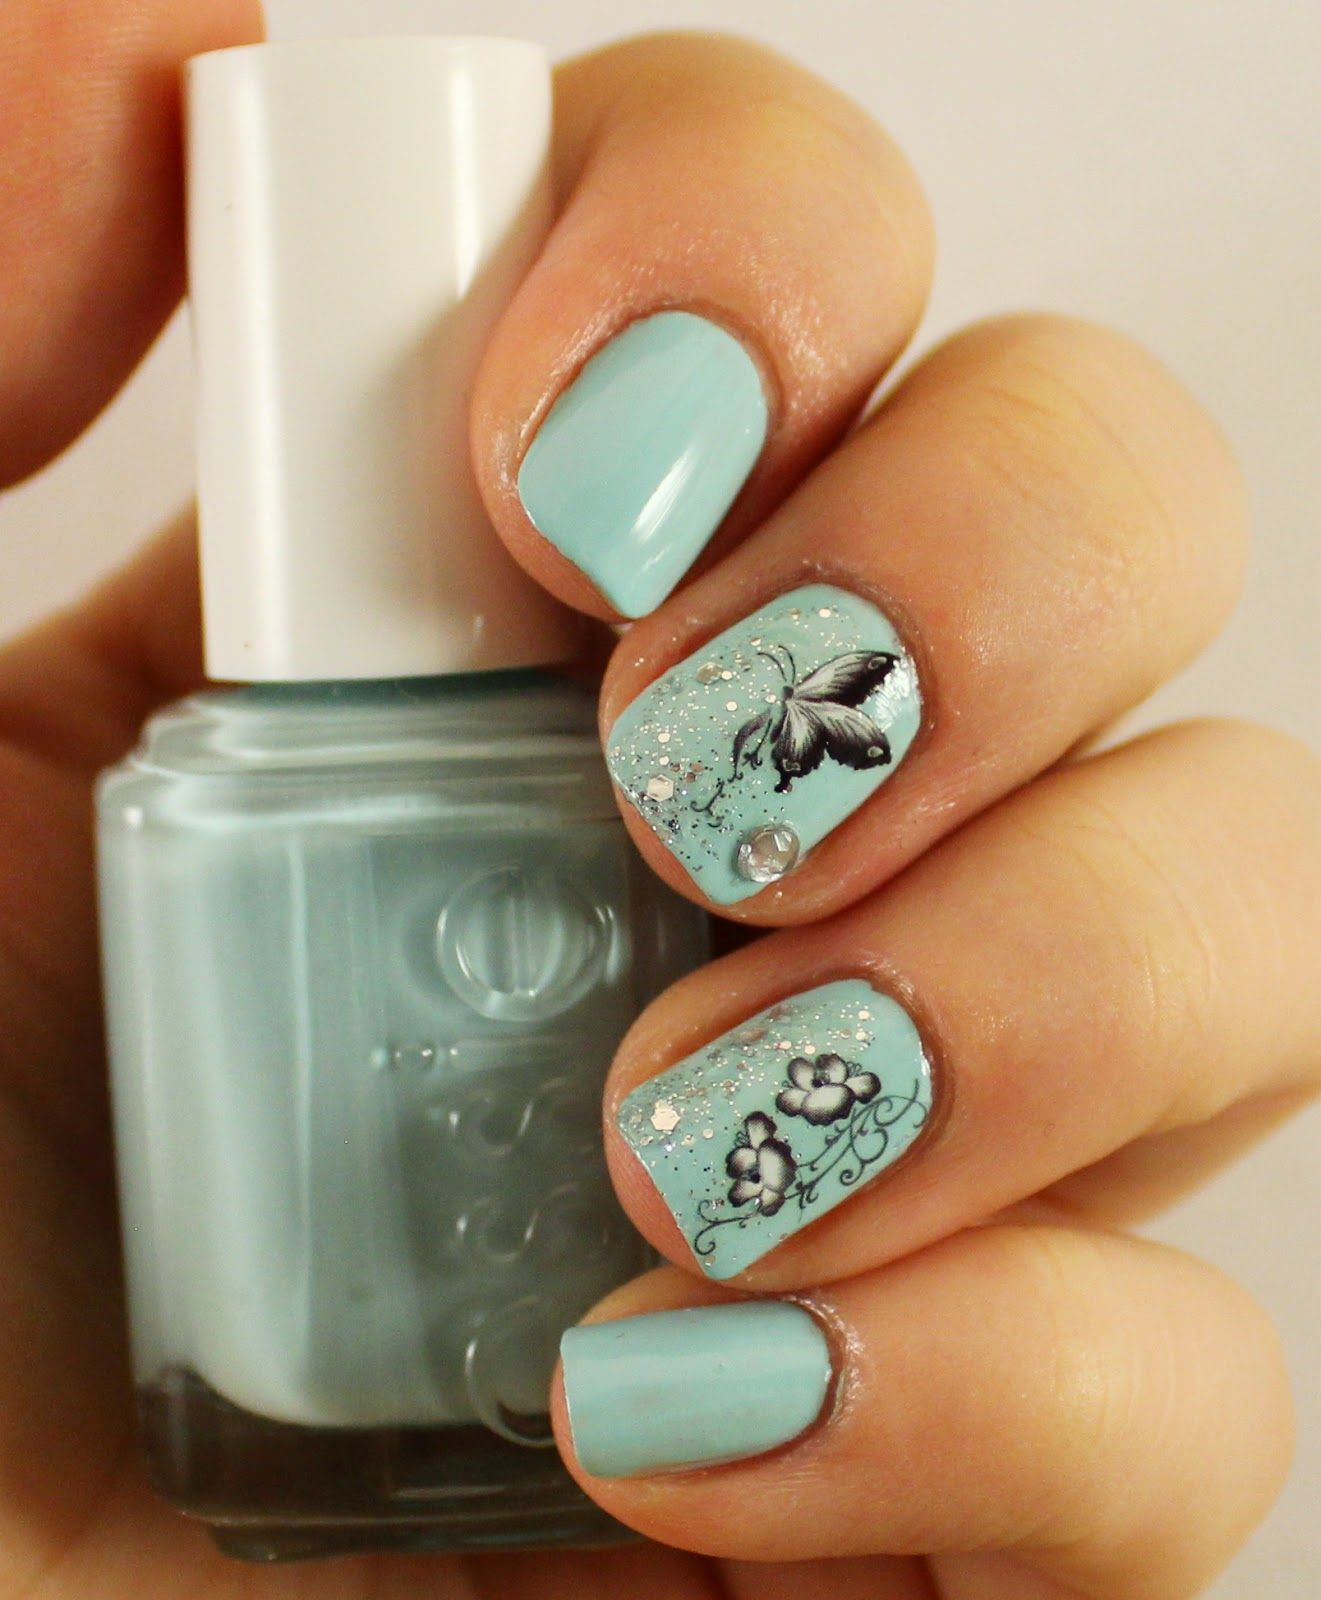 Goodly Nails: Mint Candy Apple